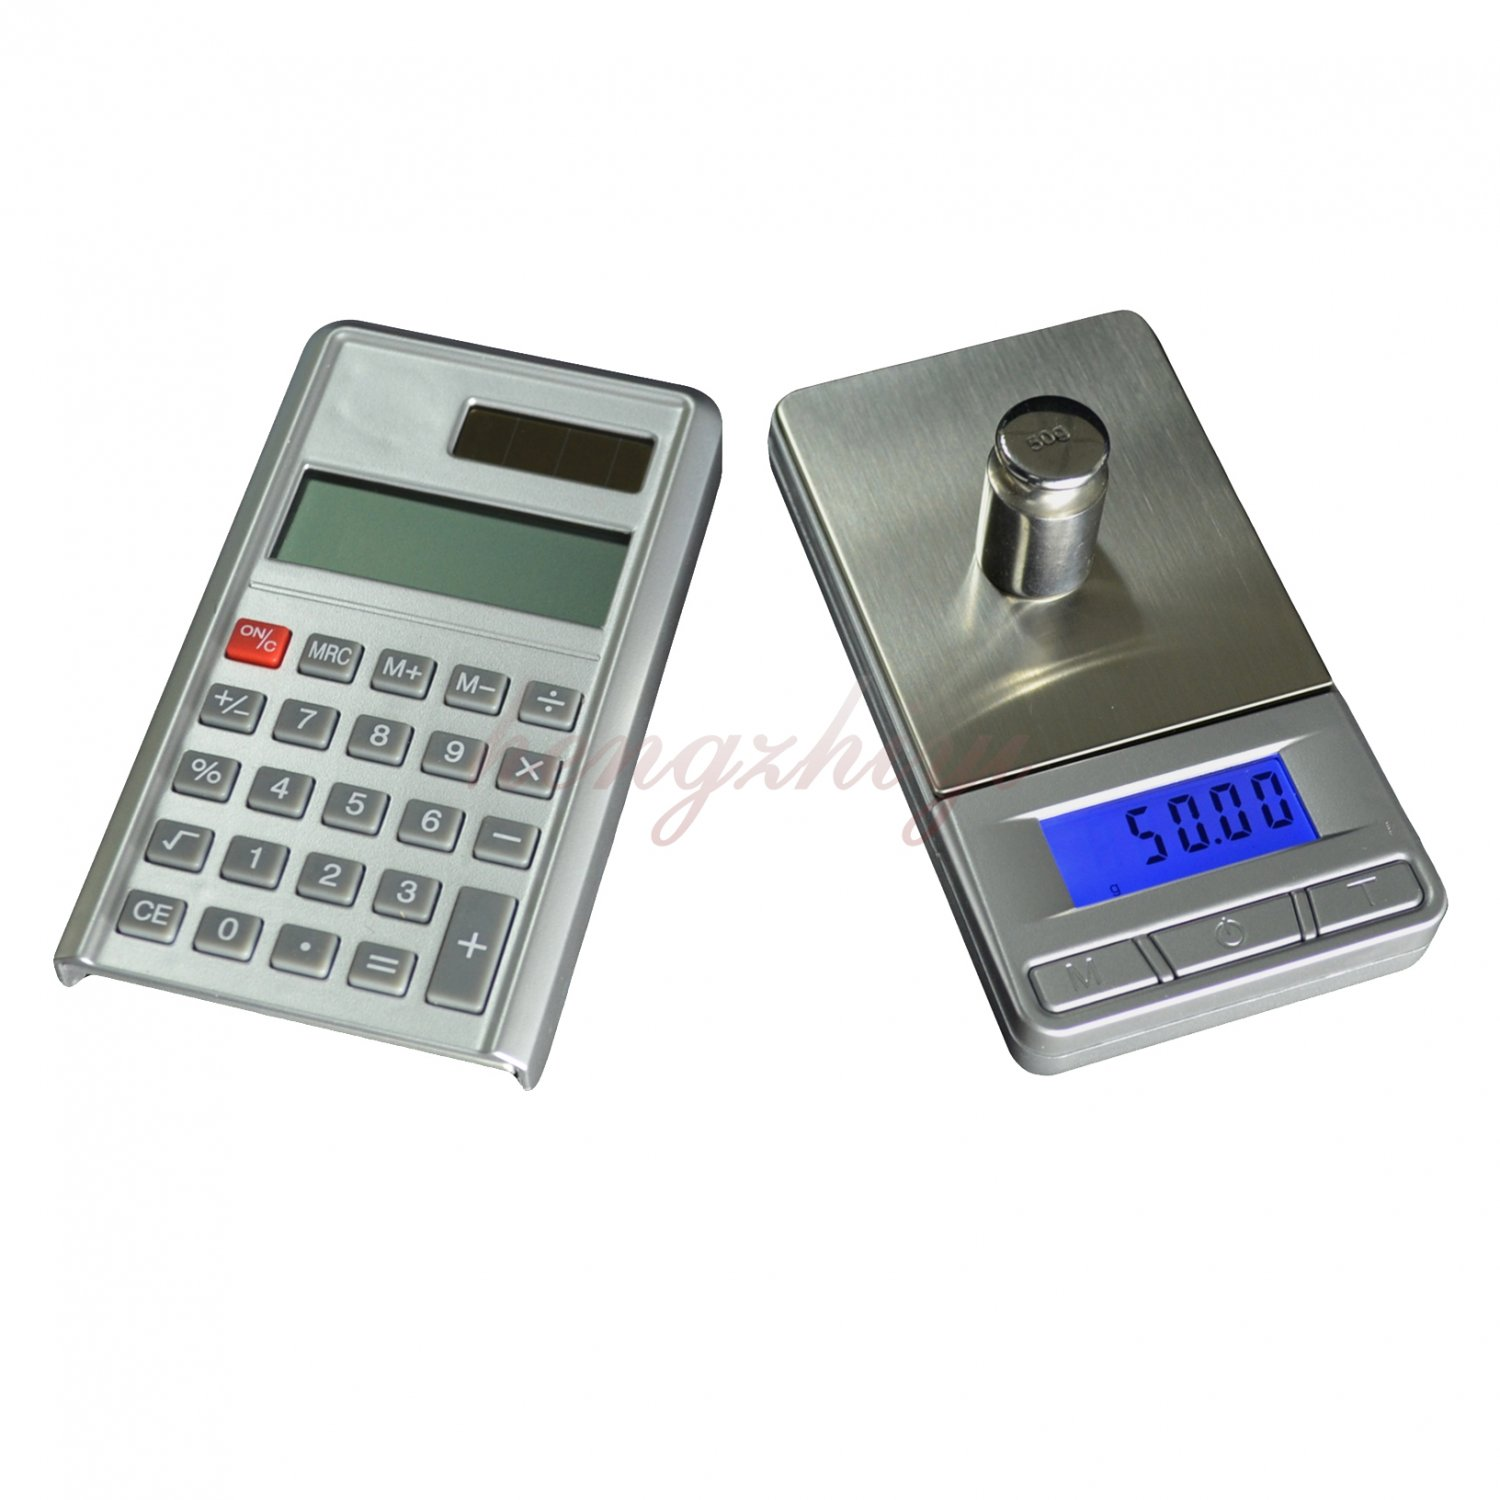 Digital Precision 200g x 0.01g Pocket Jewelry Carat Scale Balance w Calculator, Free Shipping